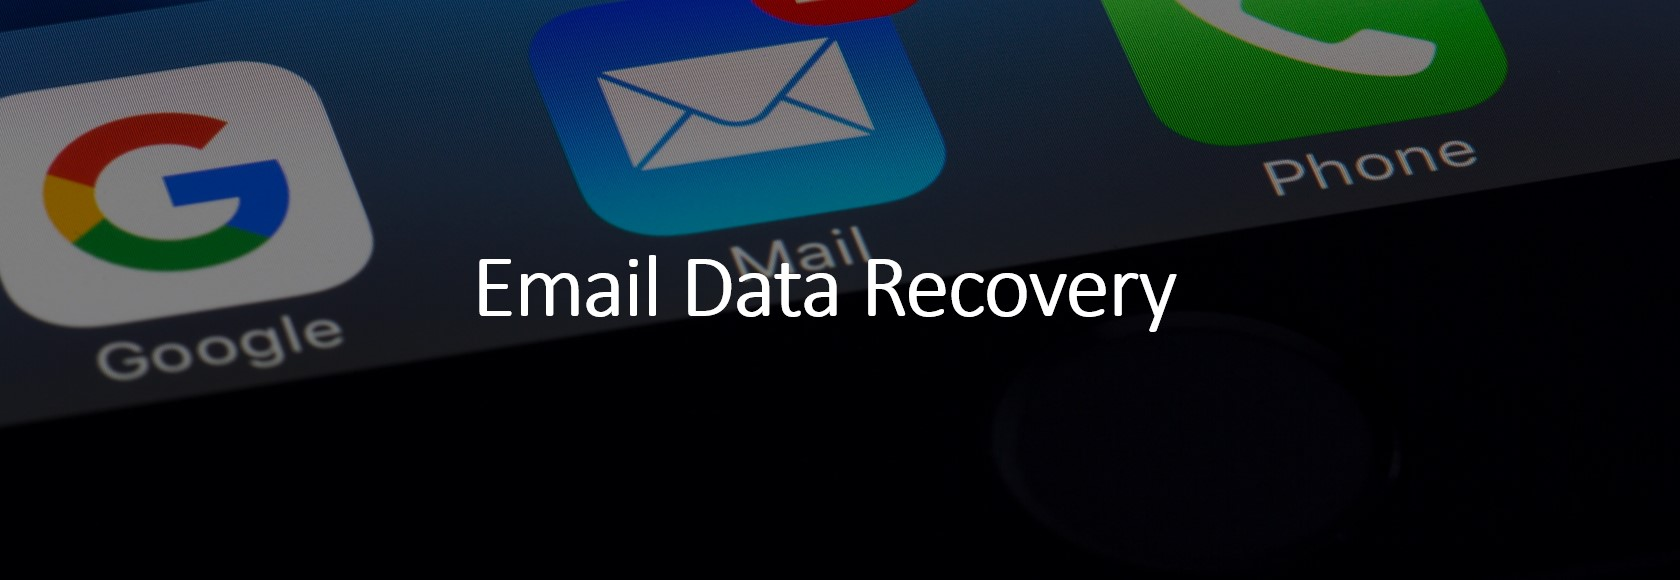 Email Data Recovery